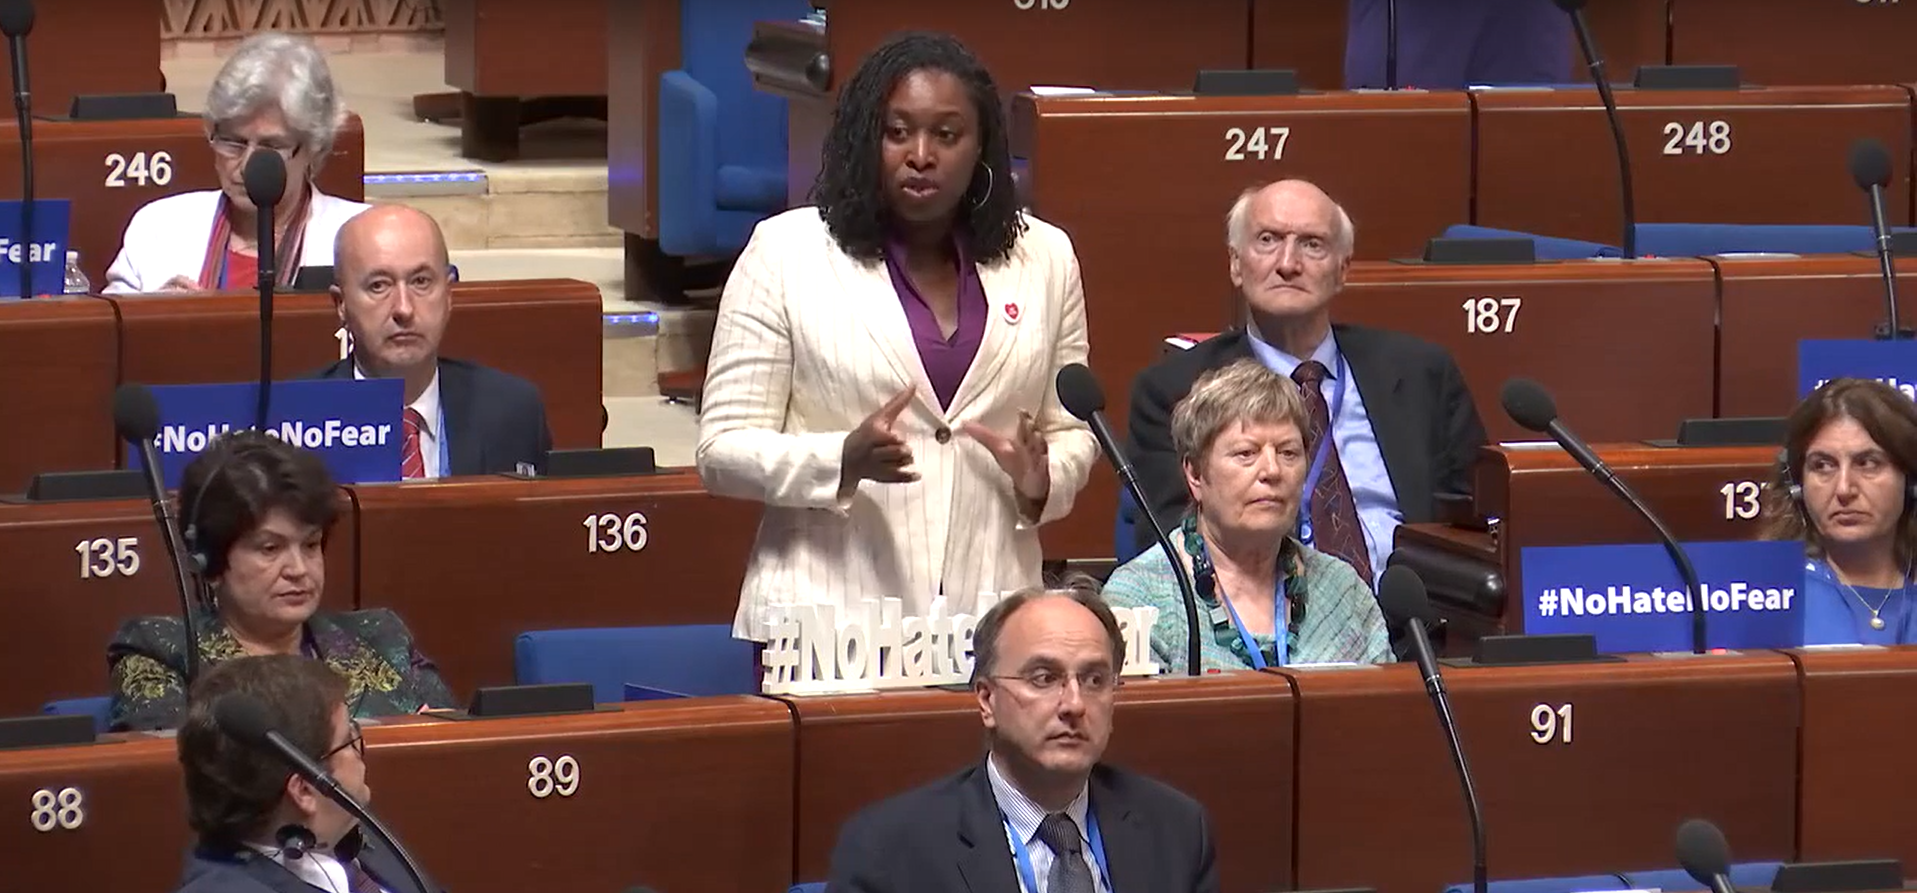 Dawn_Butler_MP_speaking_in_the_Council_of_Europe_v1.png